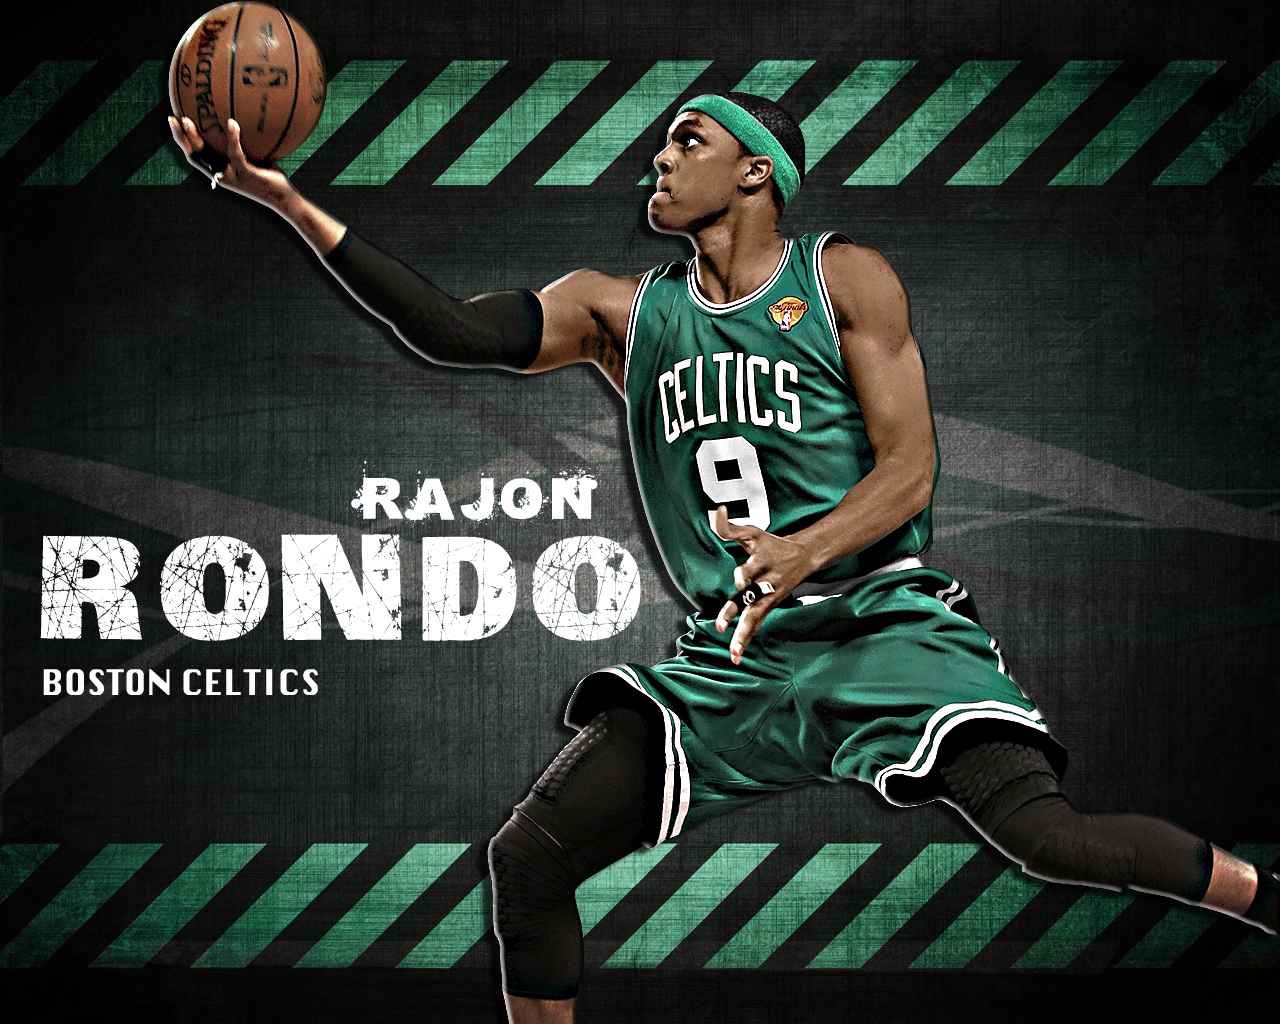 Rondo - Rajon Rondo Wallpaper (20926217) - Fanpop fanclubs